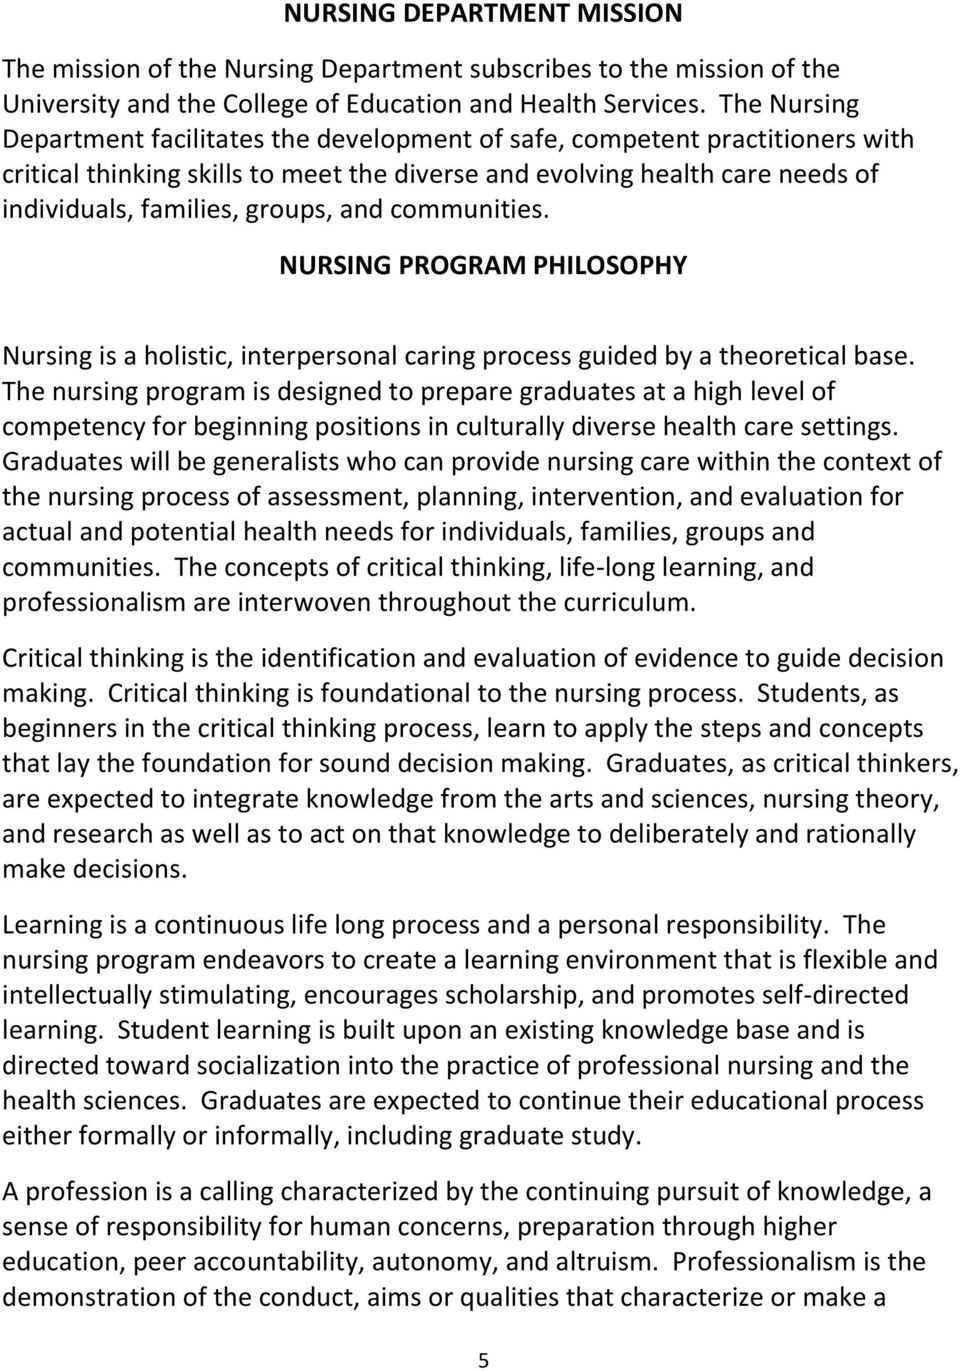 and communities. NURSING PROGRAM PHILOSOPHY Nursing is a holistic, interpersonal caring process guided by a theoretical base.